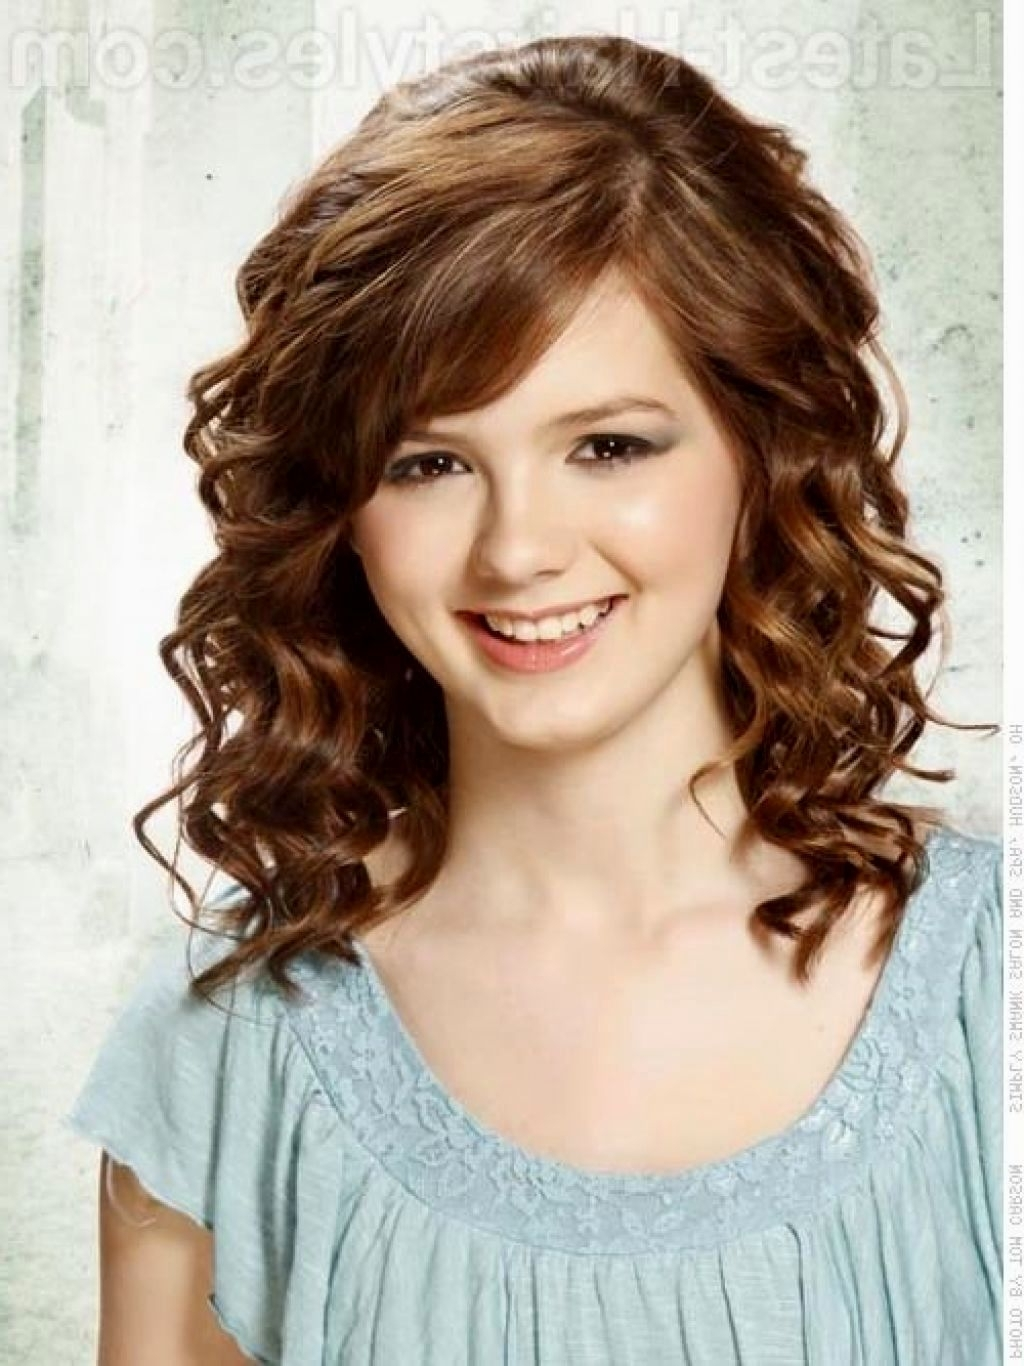 Newest Curly Medium Length Hair Wedding Hairstyles Regarding Best Curly Wedding Hairstyles For Medium Length Hair Pictures (View 8 of 15)